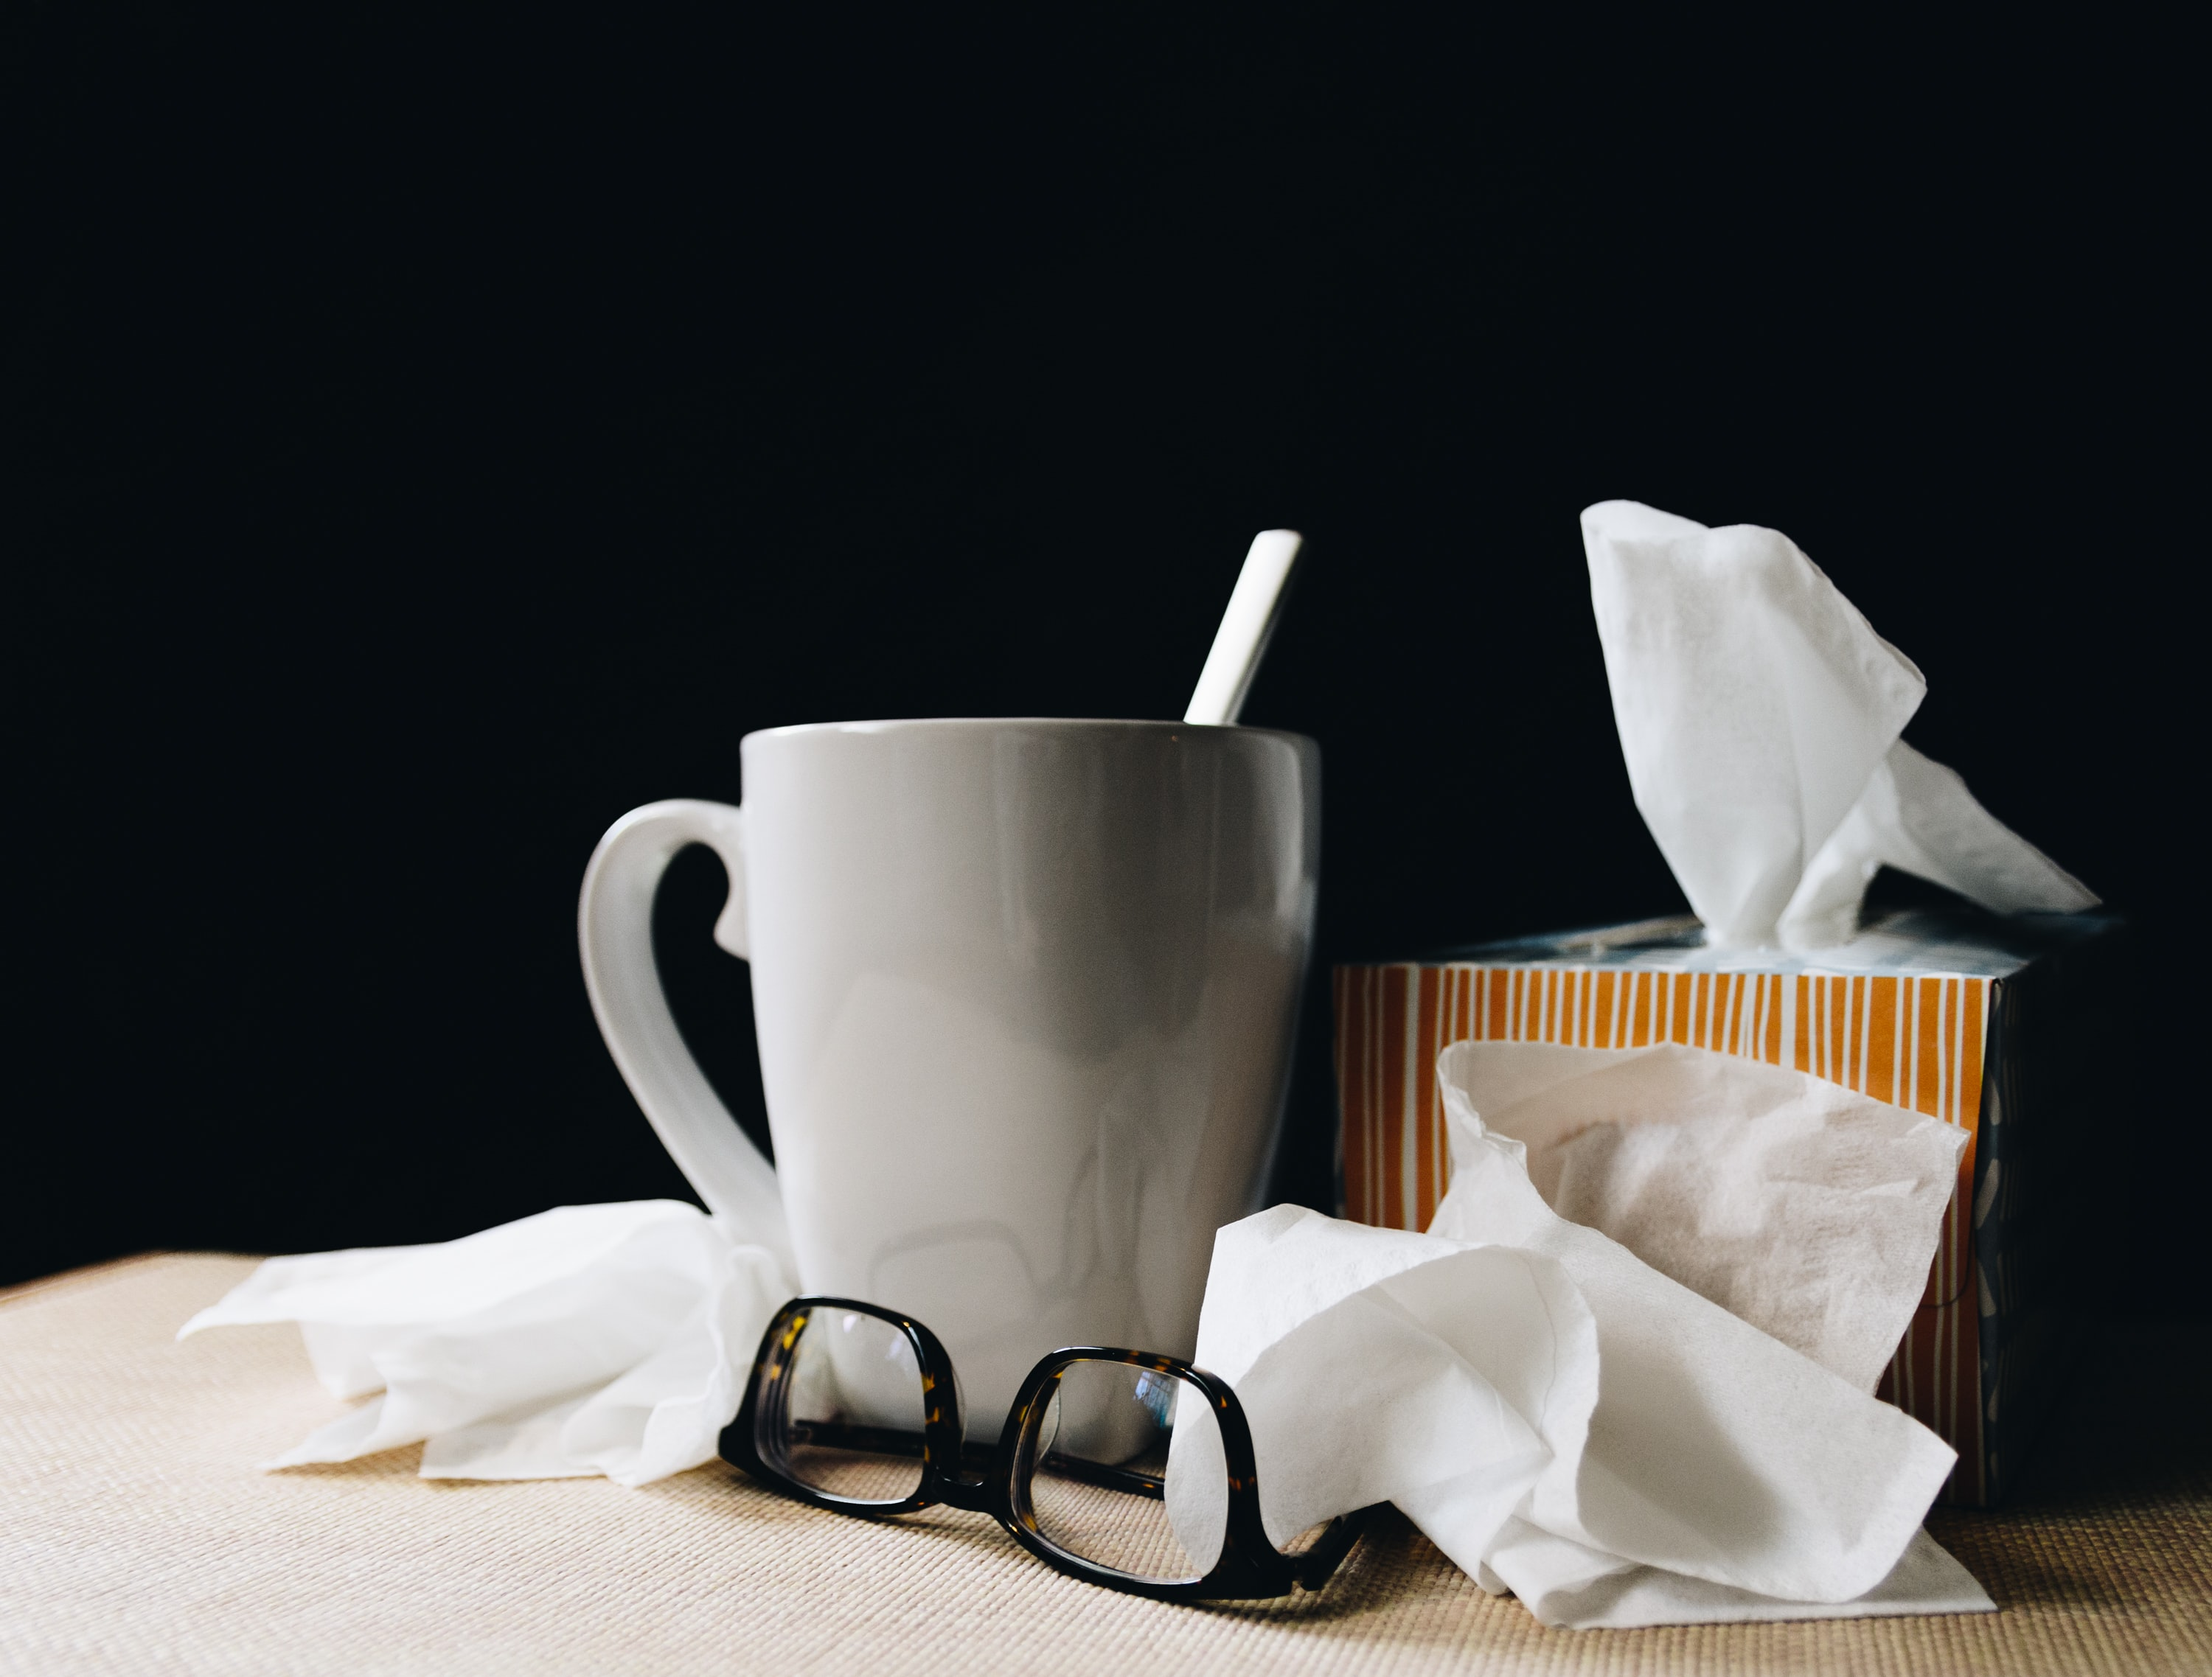 A photo of a mug and tissue box, surrounded by used tissues, on a table.